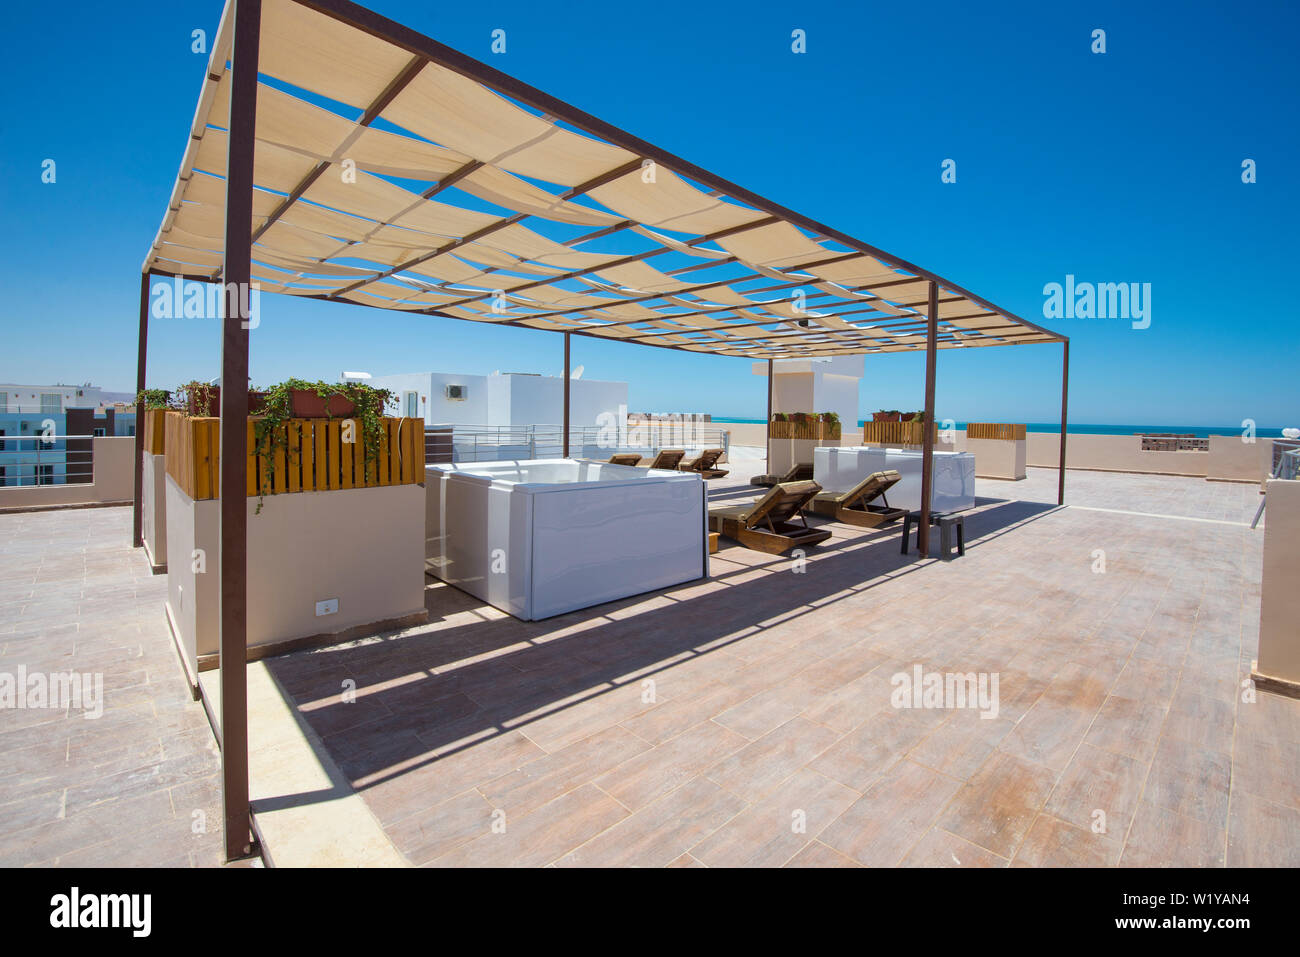 Sunbeds And Hot Tubs On Roof Terrace Patio Sunbathing Area Of Luxury Hotel Apartment Building Stock Photo Alamy